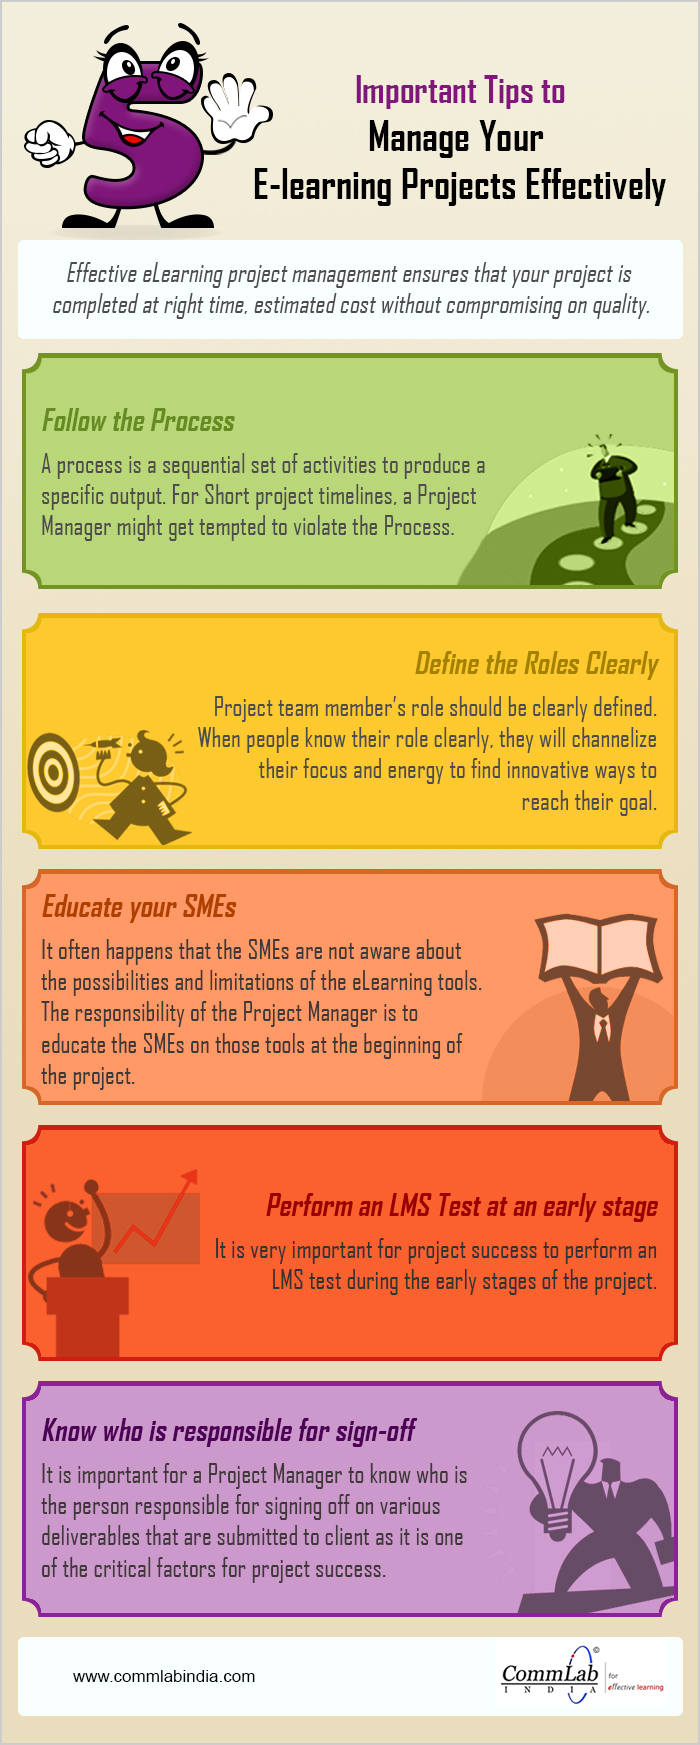 Important Tips to Manage Your E-learning Projects Effectively – An Infographic